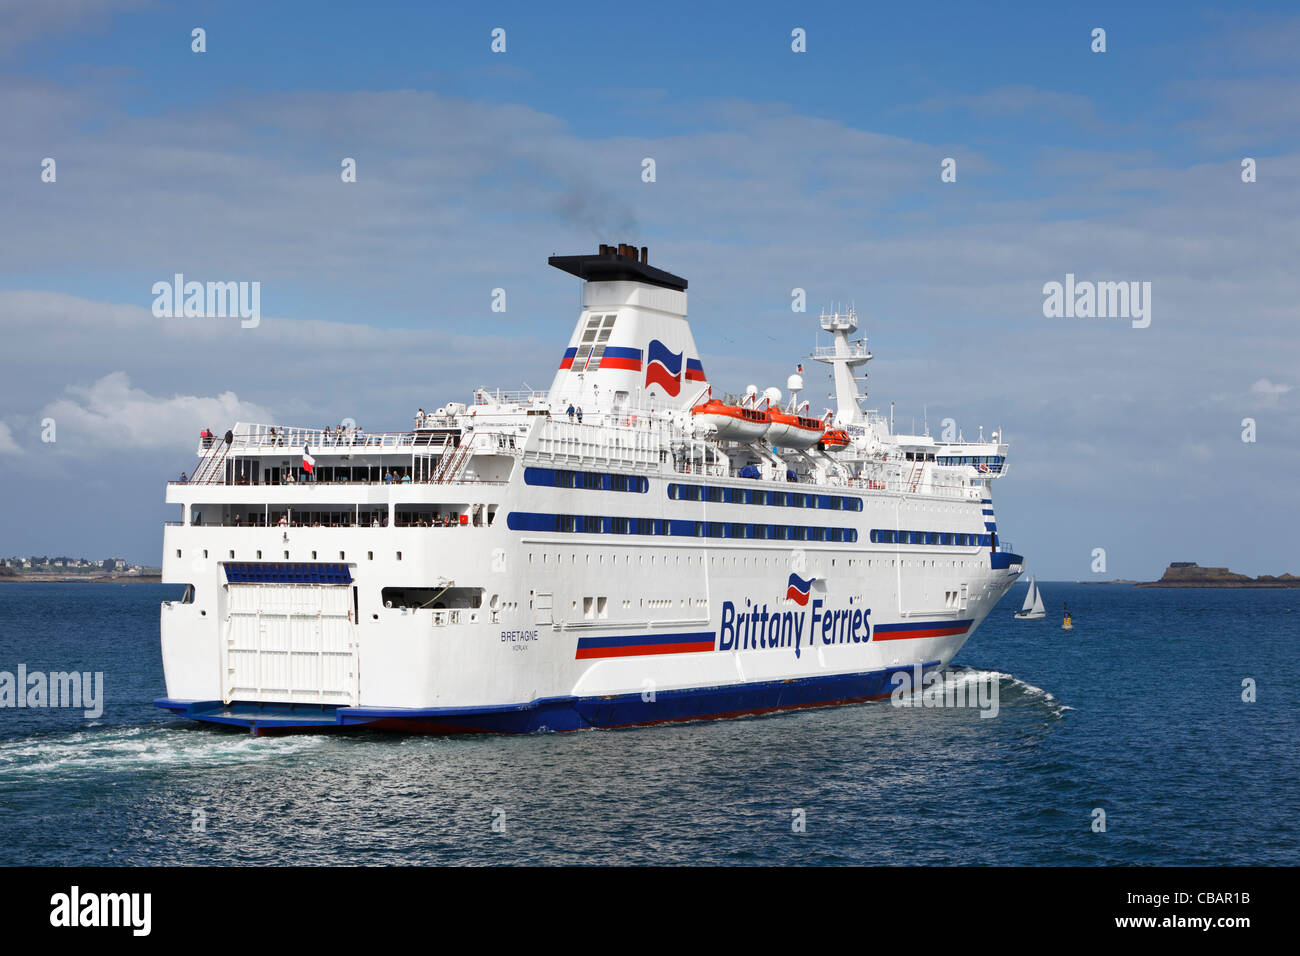 Brittany Ferries passenger ferry sailing out of St Malo harbour, France - Stock Image